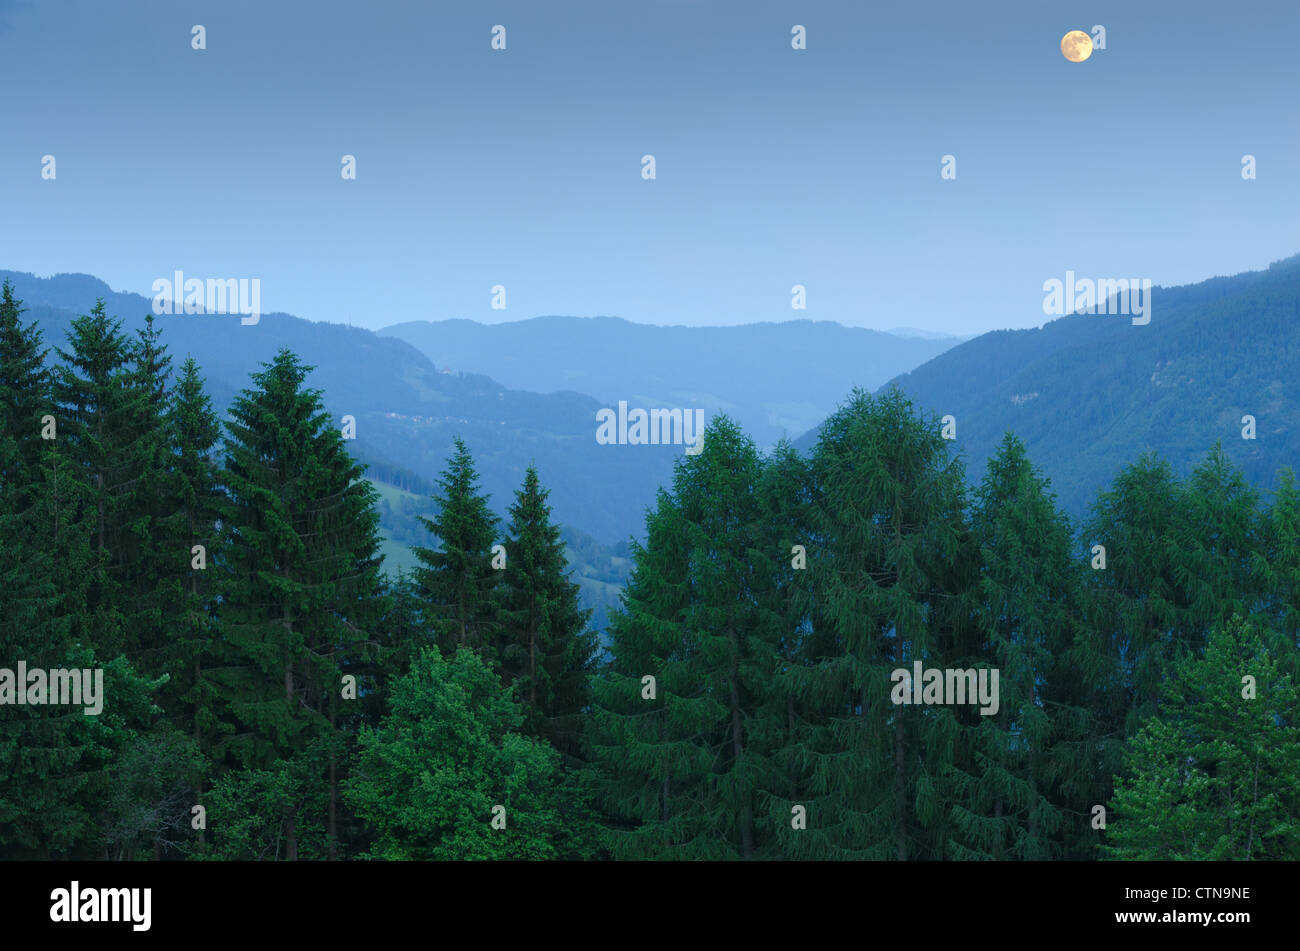 Moonlit Austrian Alpine Landscape. View toward Stolzalpe from the hamlet of Freiberg in the Ranten Valley near Murau, - Stock Image